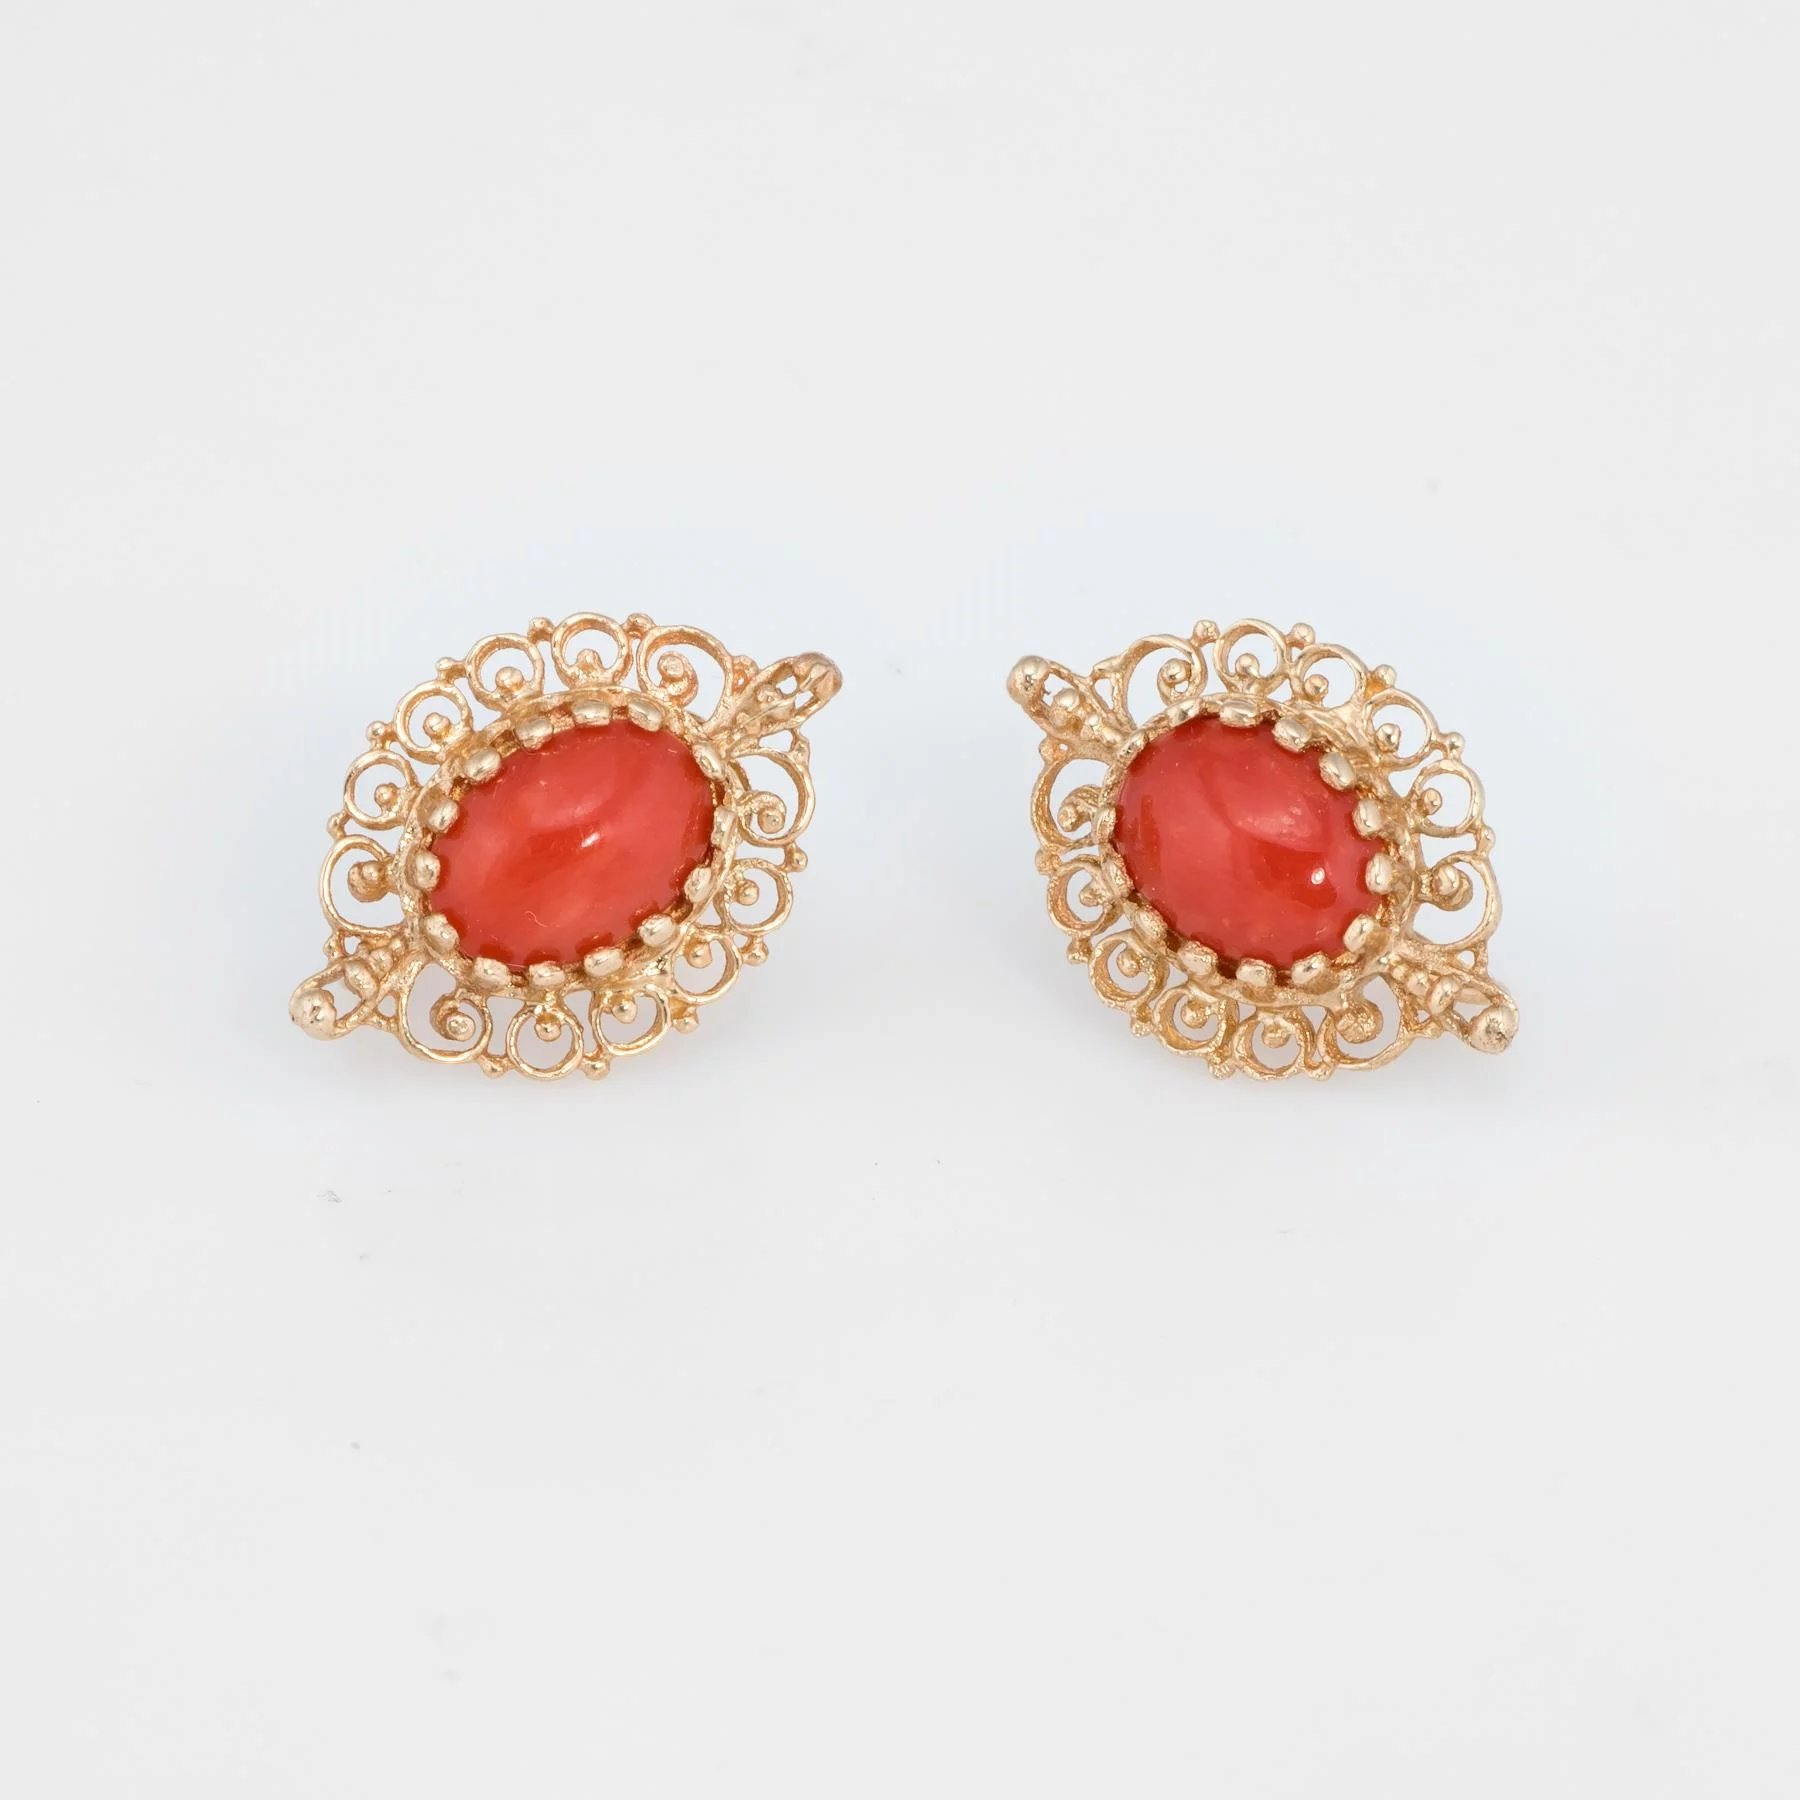 d5c9bff64 Click to expand · Mediterranean Red Coral Earrings Vintage 14 Karat Yellow  Gold Estate Jewelry Fine